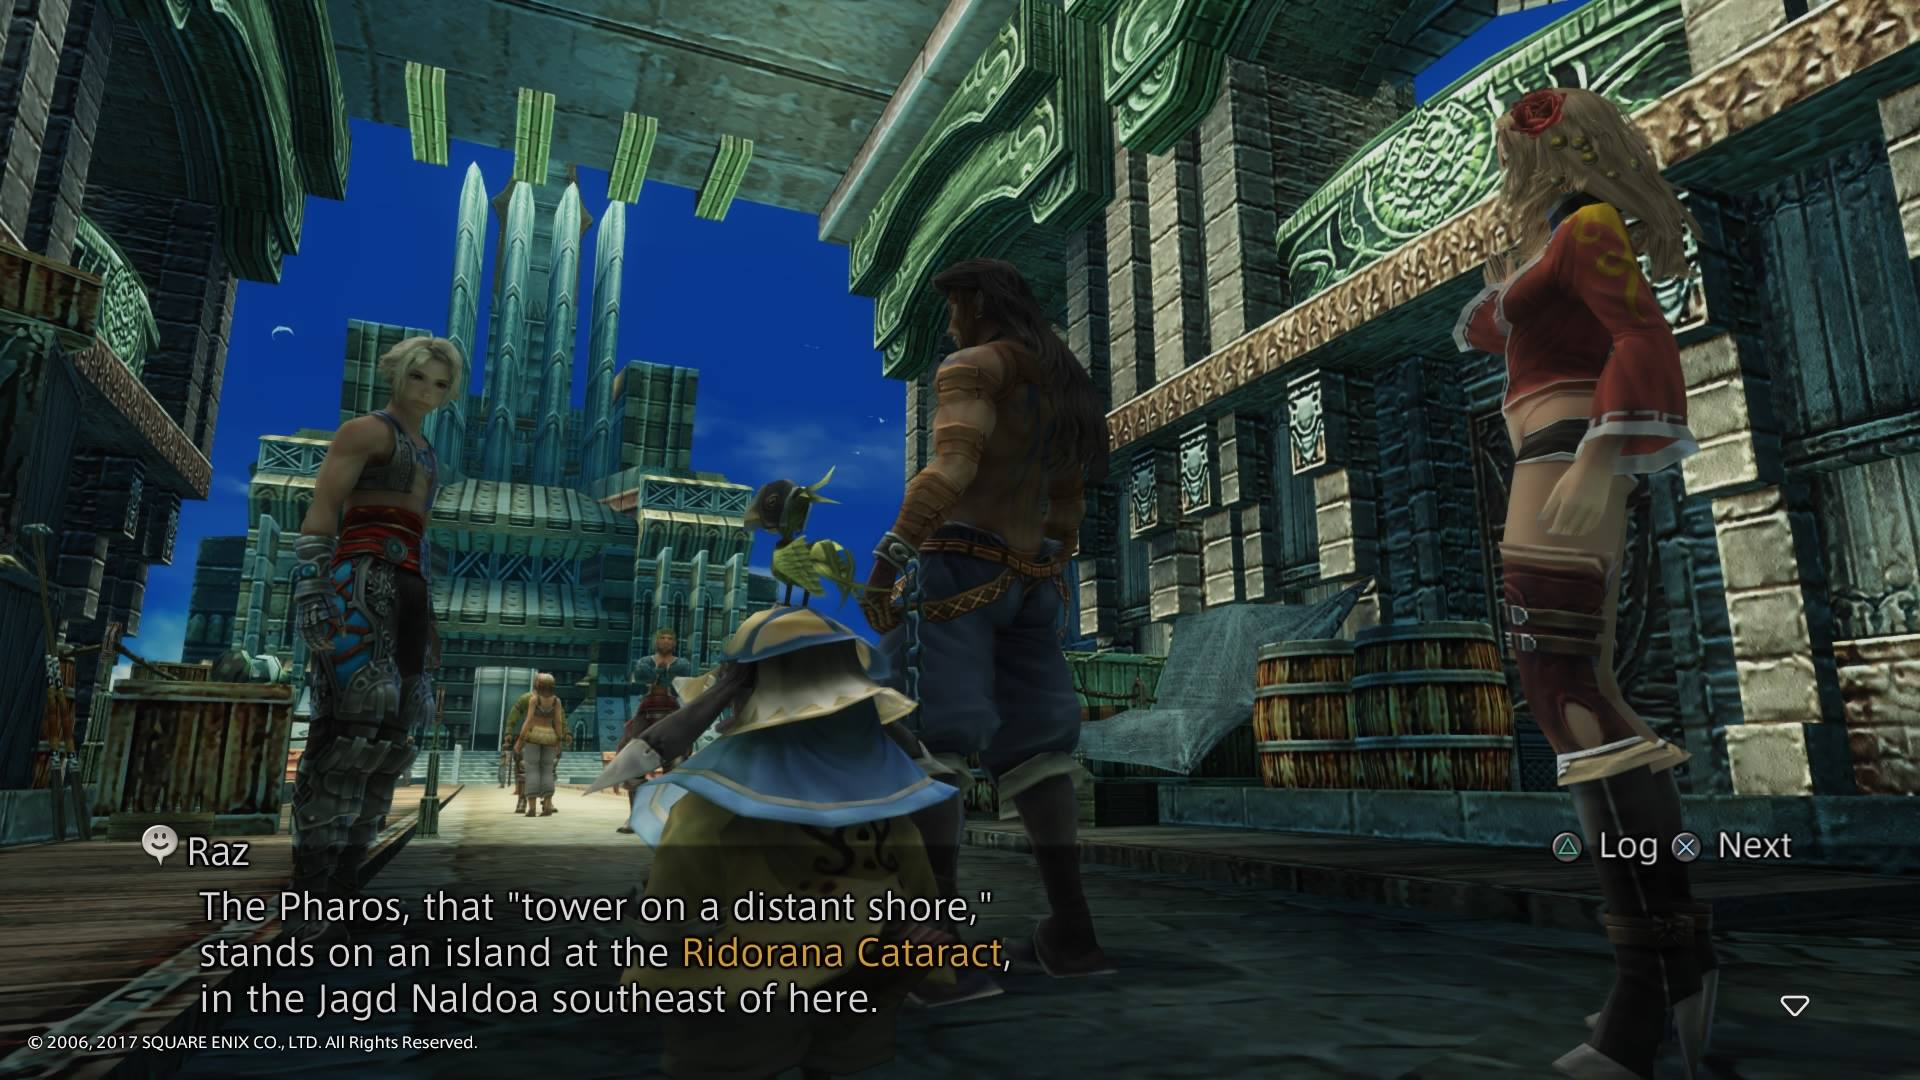 Square-Enix's Final Fantasy XII uses yellow text to bring awareness to players about places, people, or events of interest that the player has yet to encounter